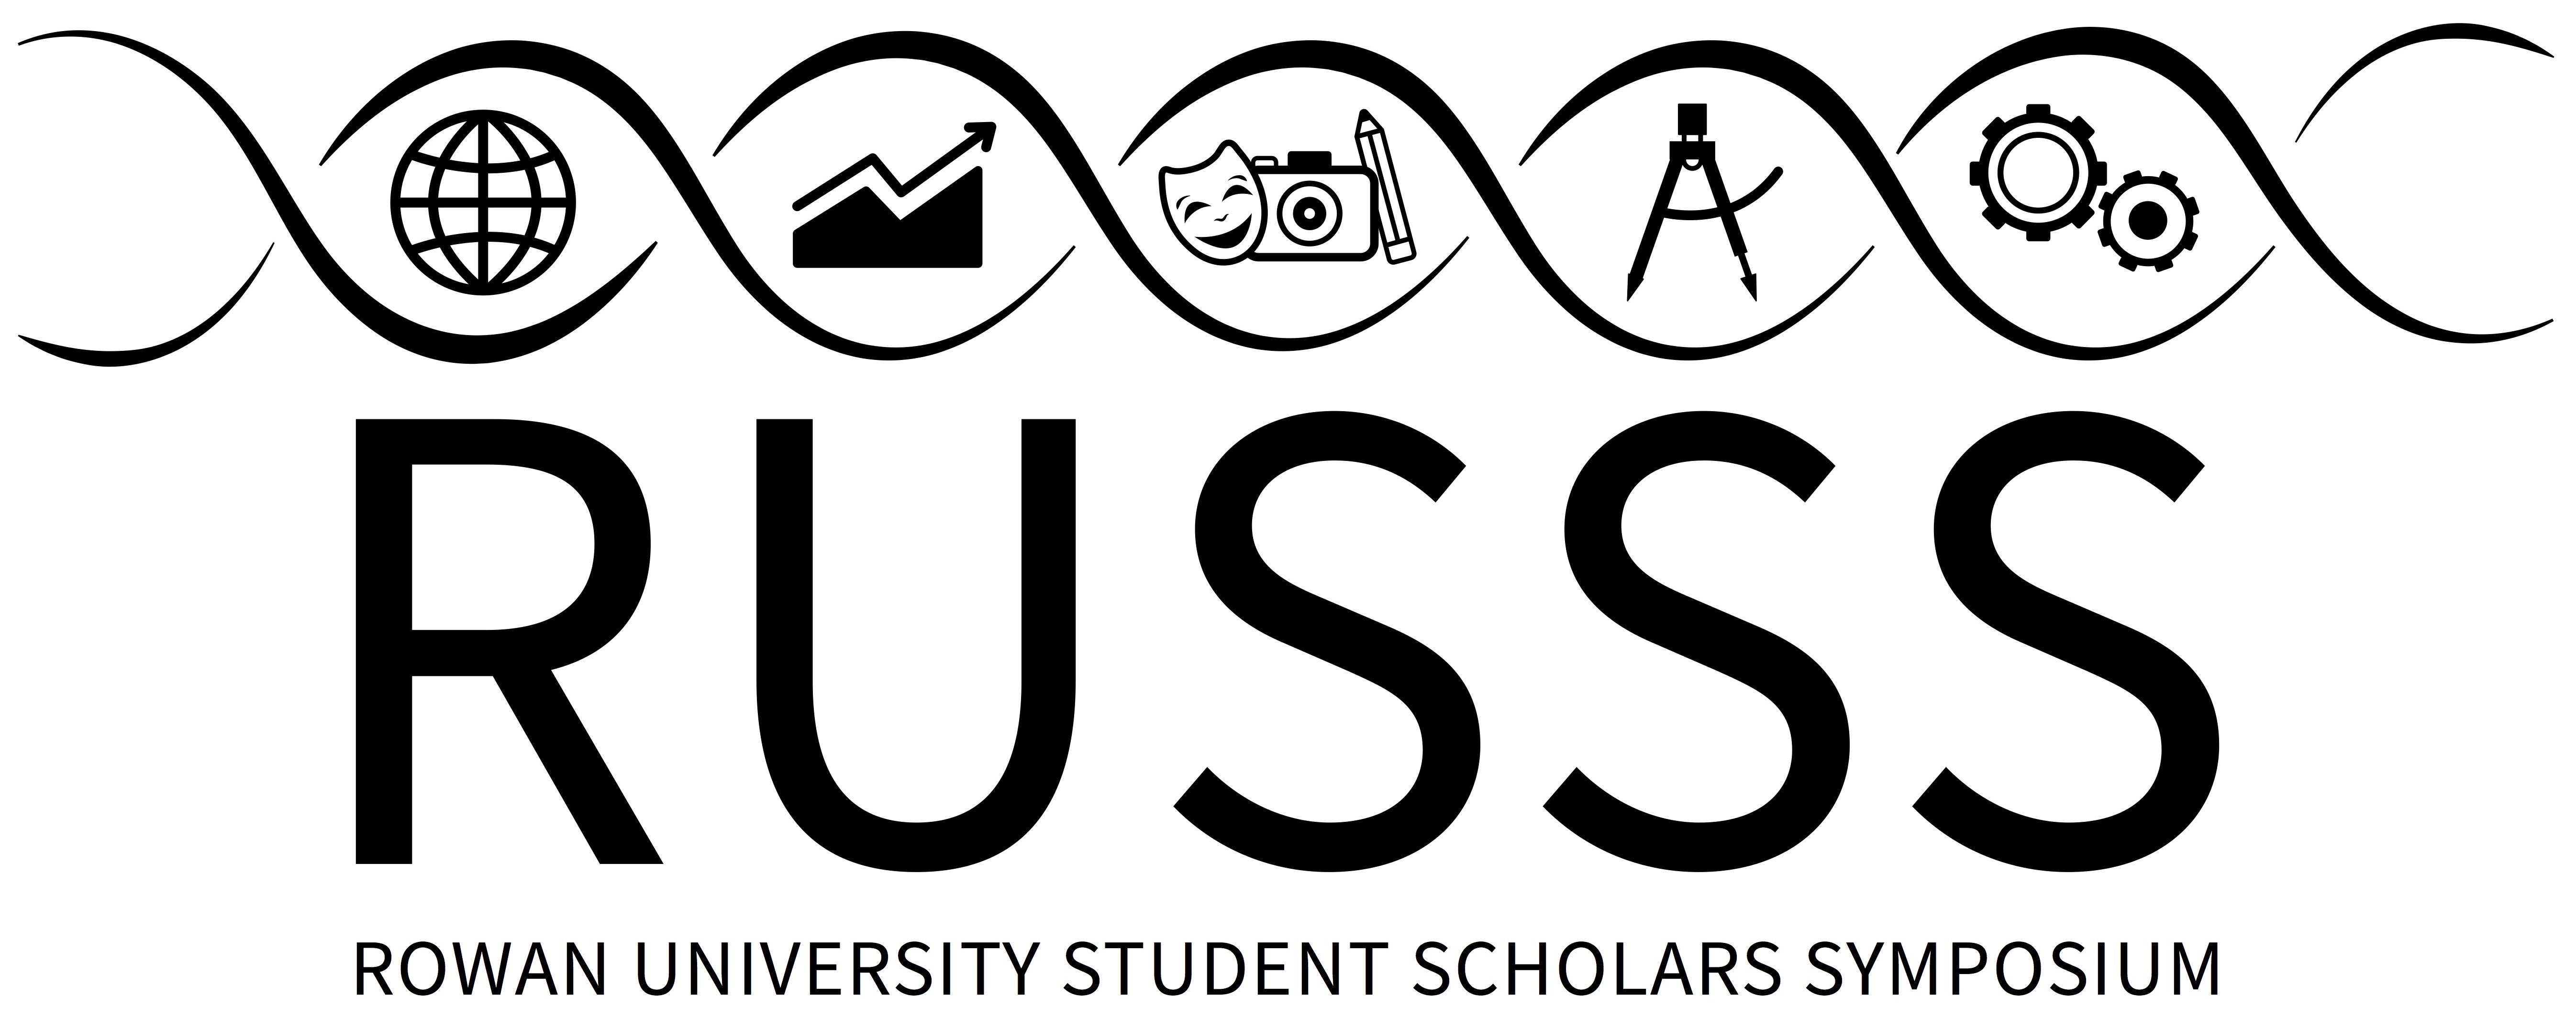 RUSSS logo cropped